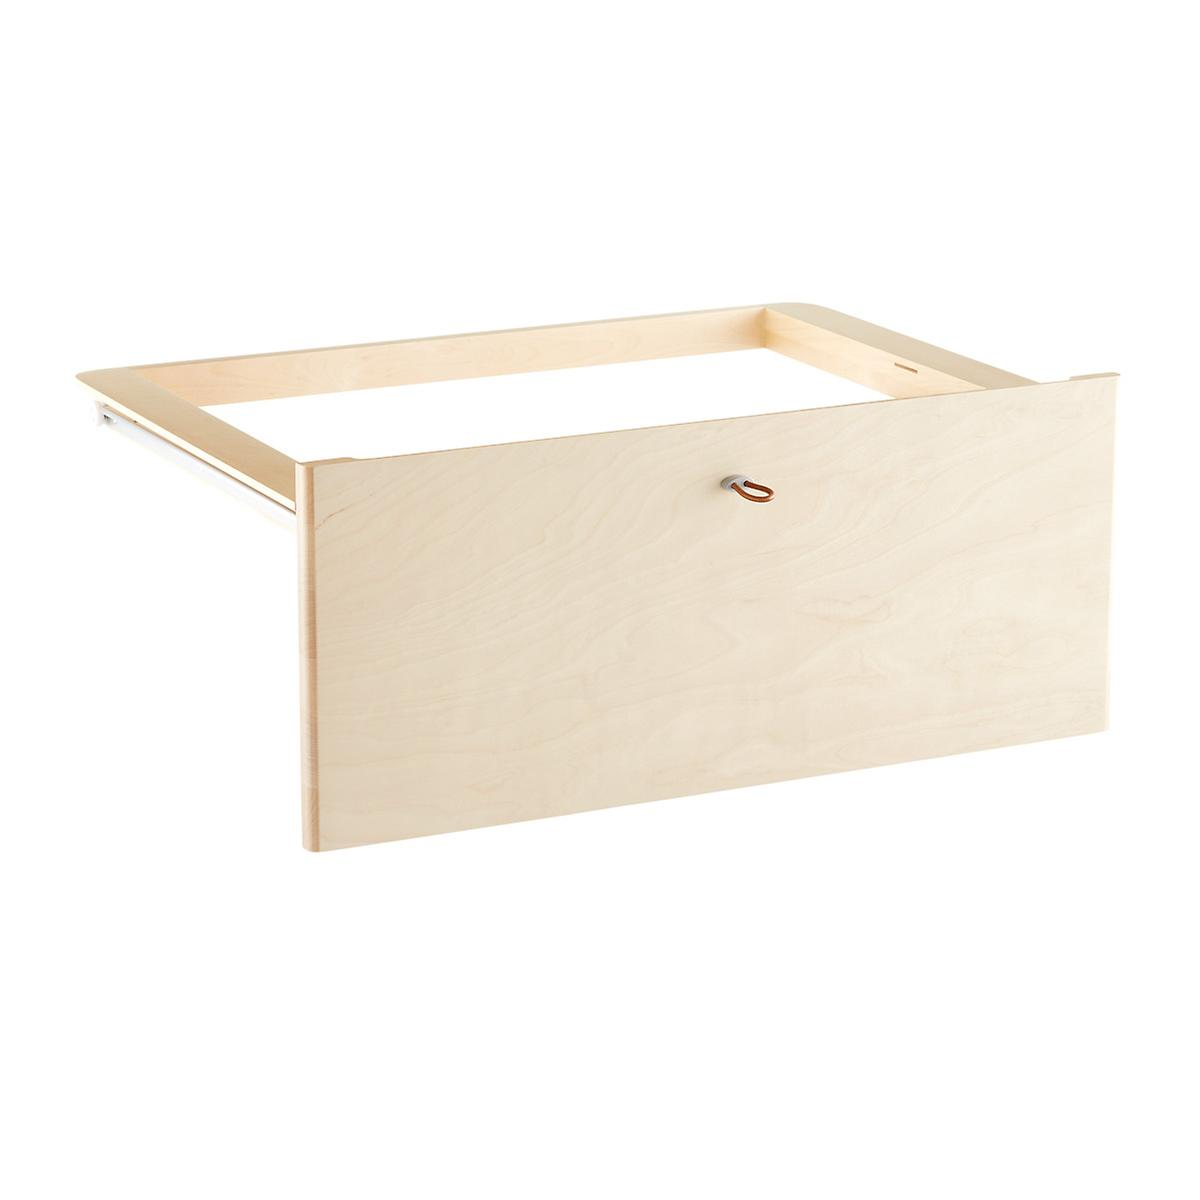 Birch Elfa Décor Drawer Frames & Fronts | The Container Store